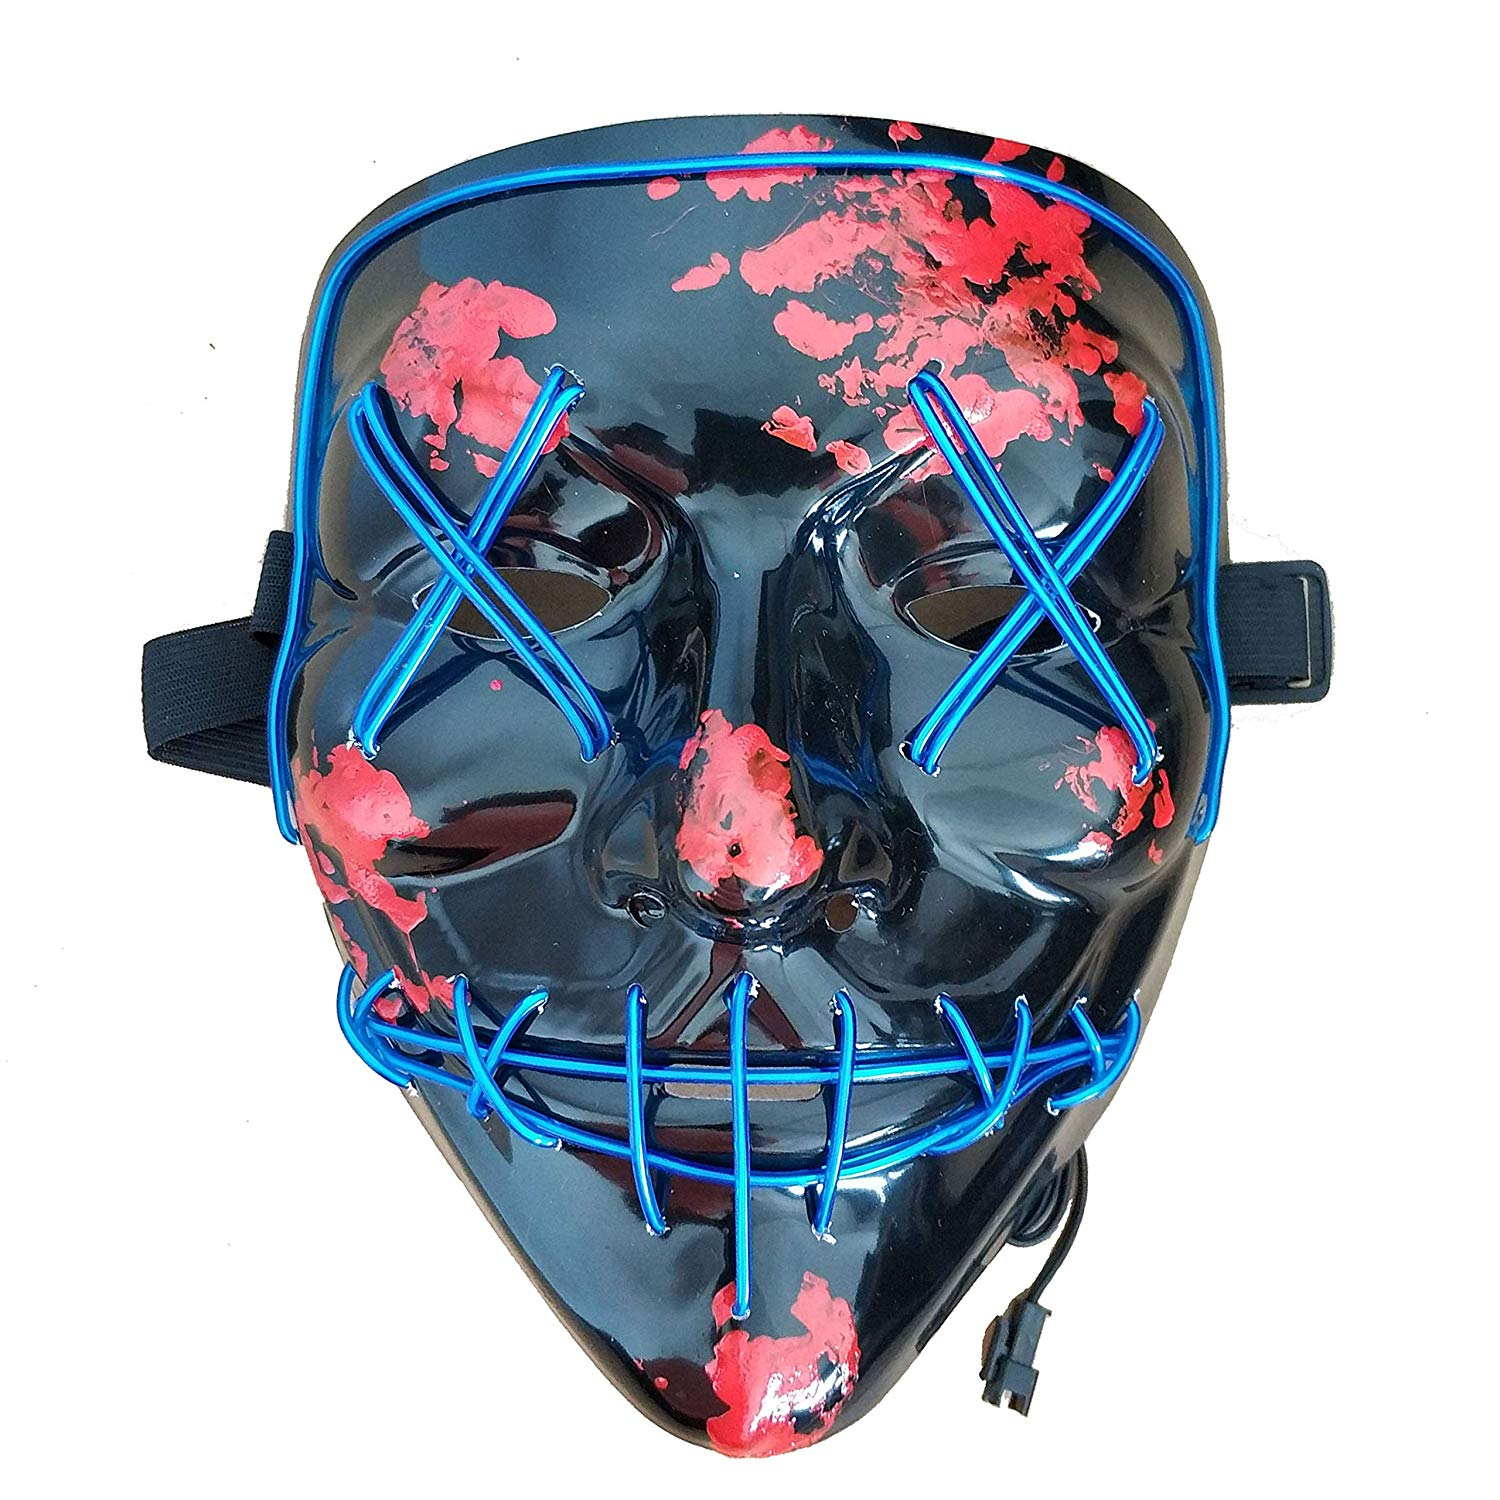 Himine Halloween Mask Cosplay LED Light up Purge Mask for Festival Party